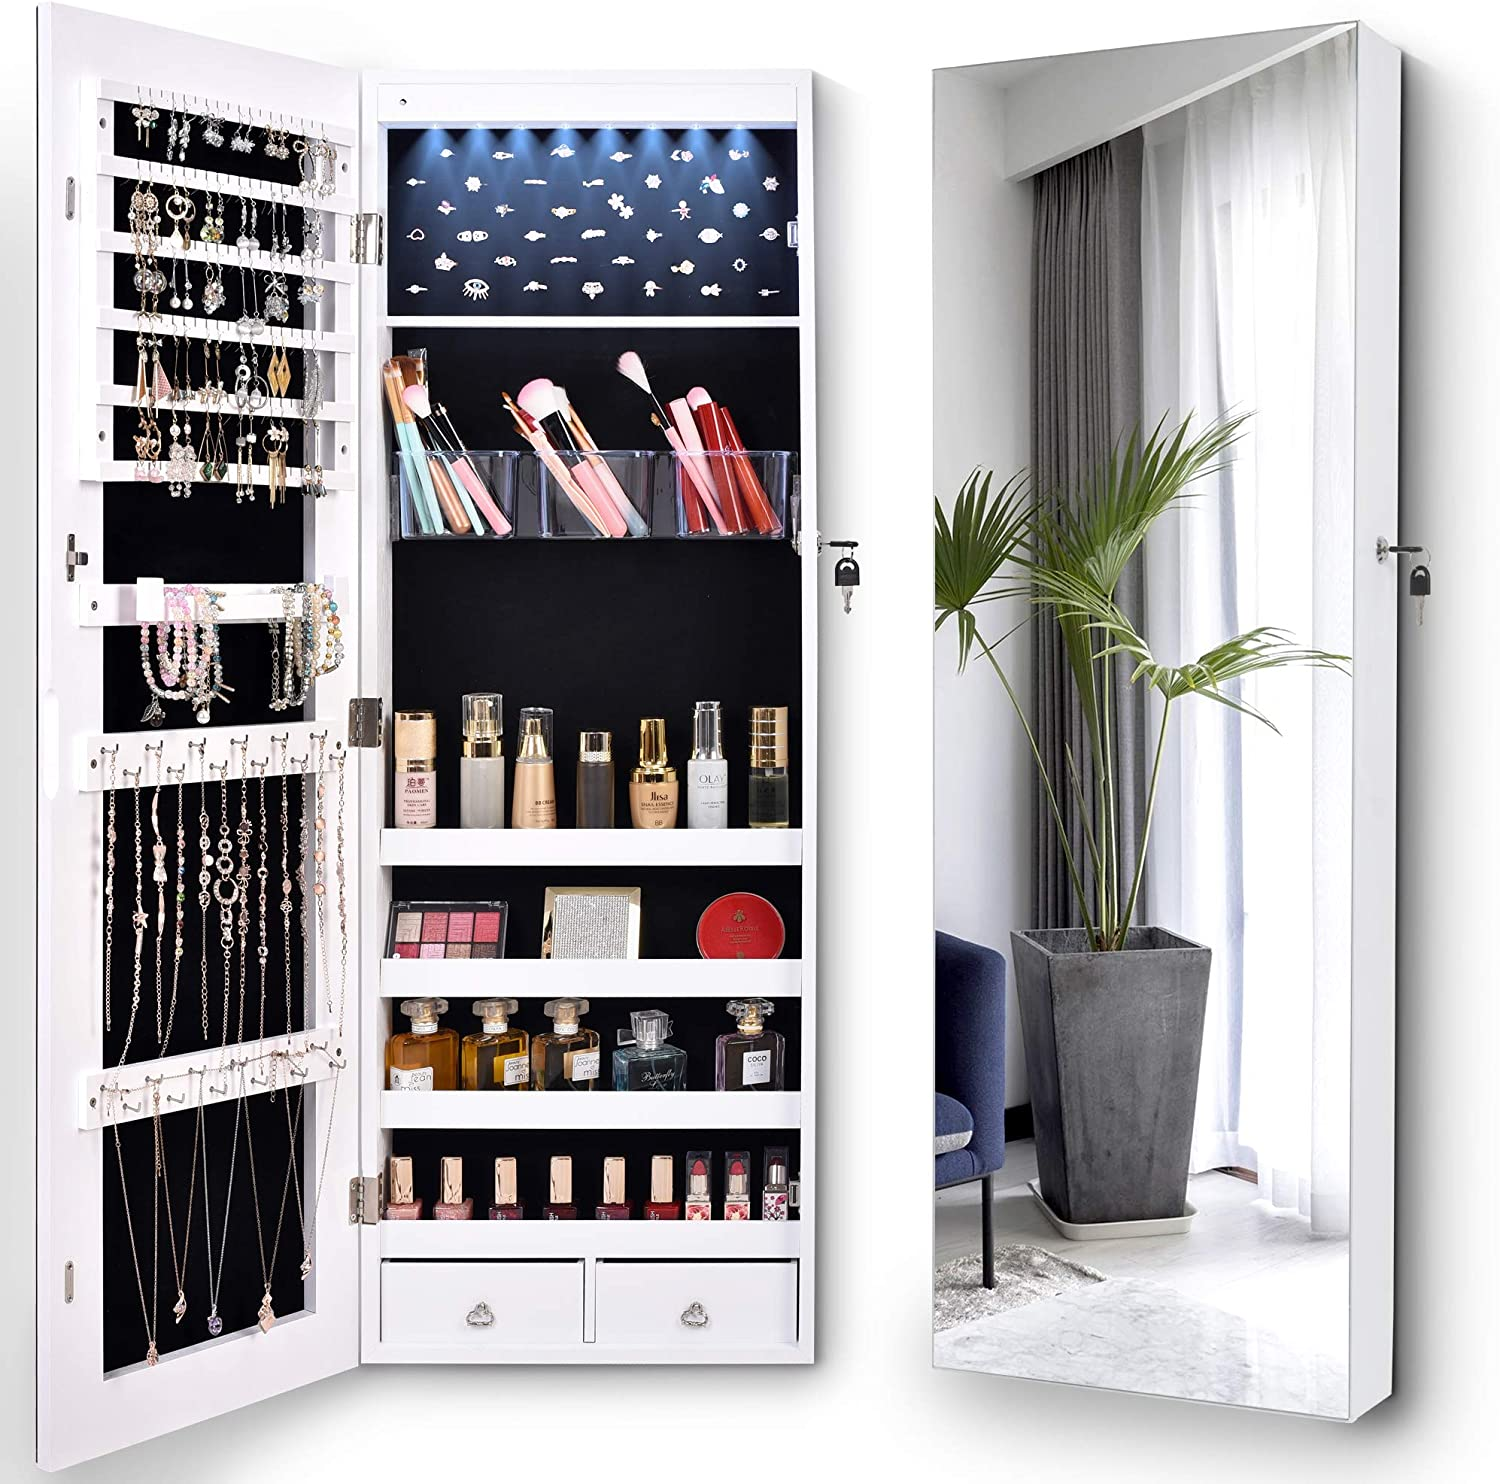 LVSOMT Full-Length Mirror Jewelry Cabinet, Jewelry Organizer and Storage with 8 LED Lights, Wall Mounted / Over The Door Hanging Large Jewelry Armoire with 2 Drawers, 4 Shelves for Bedroom (White)